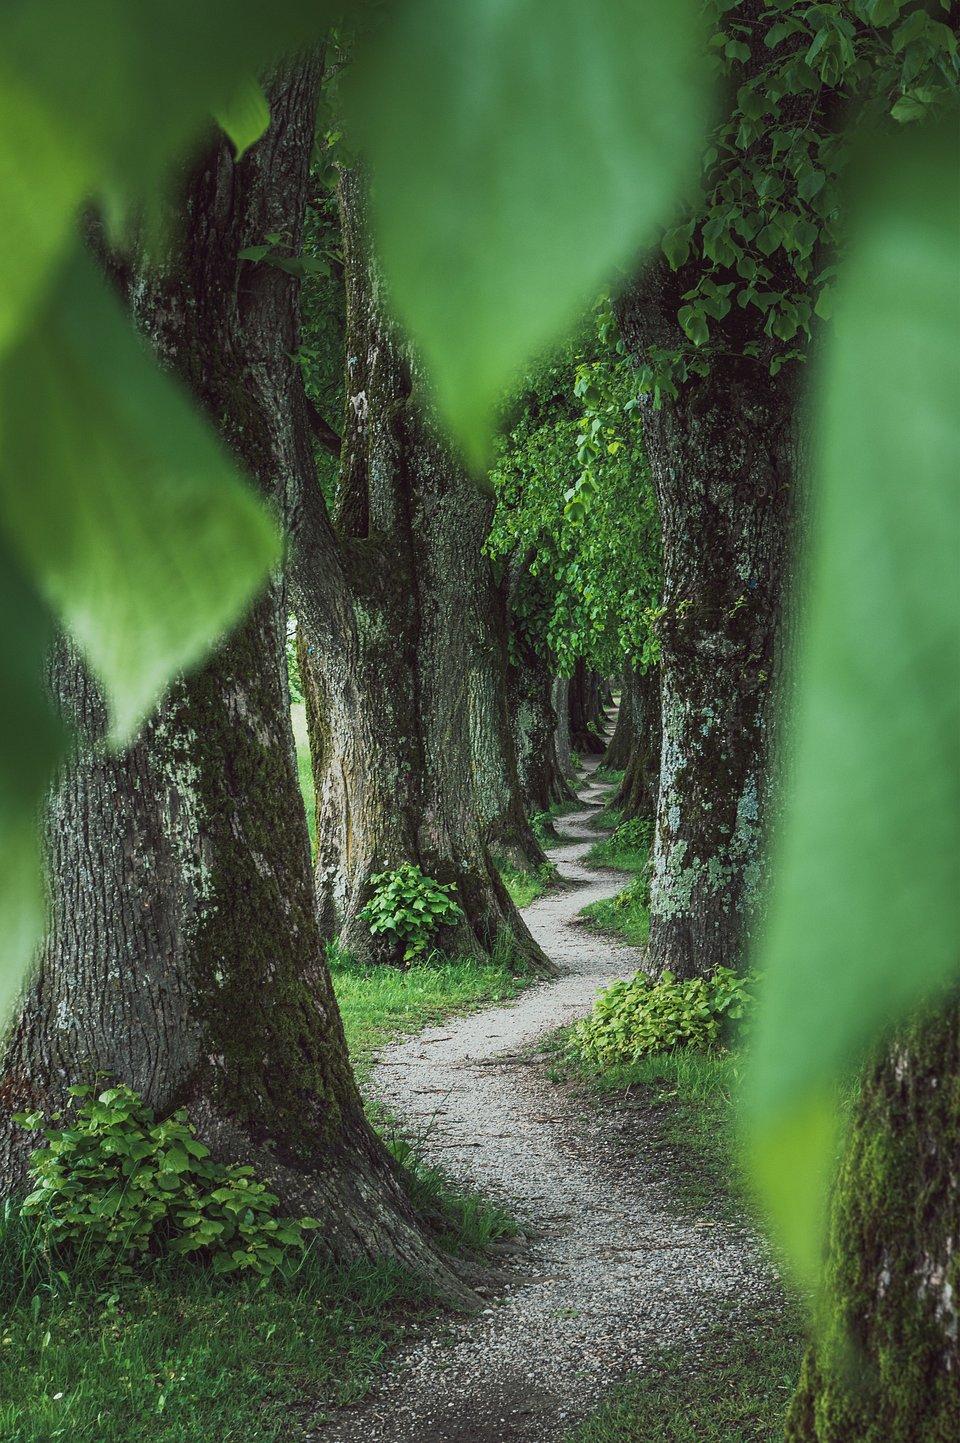 Magical path in the Bavarian countryside, Germany (Maximilian Dreher/AGORA images)